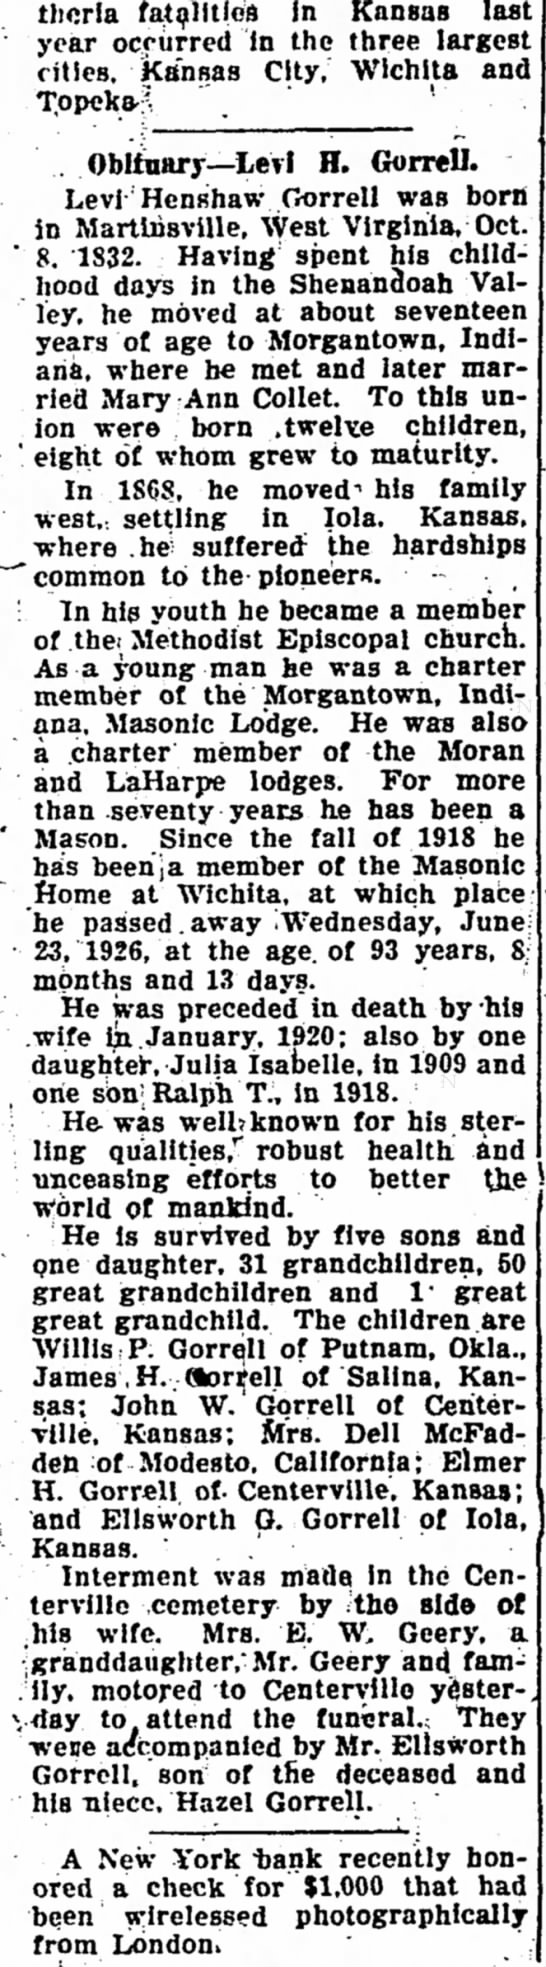 Levi H. Gorrell Obituary Iola Register 26 June 1926 Page 6 Col 1